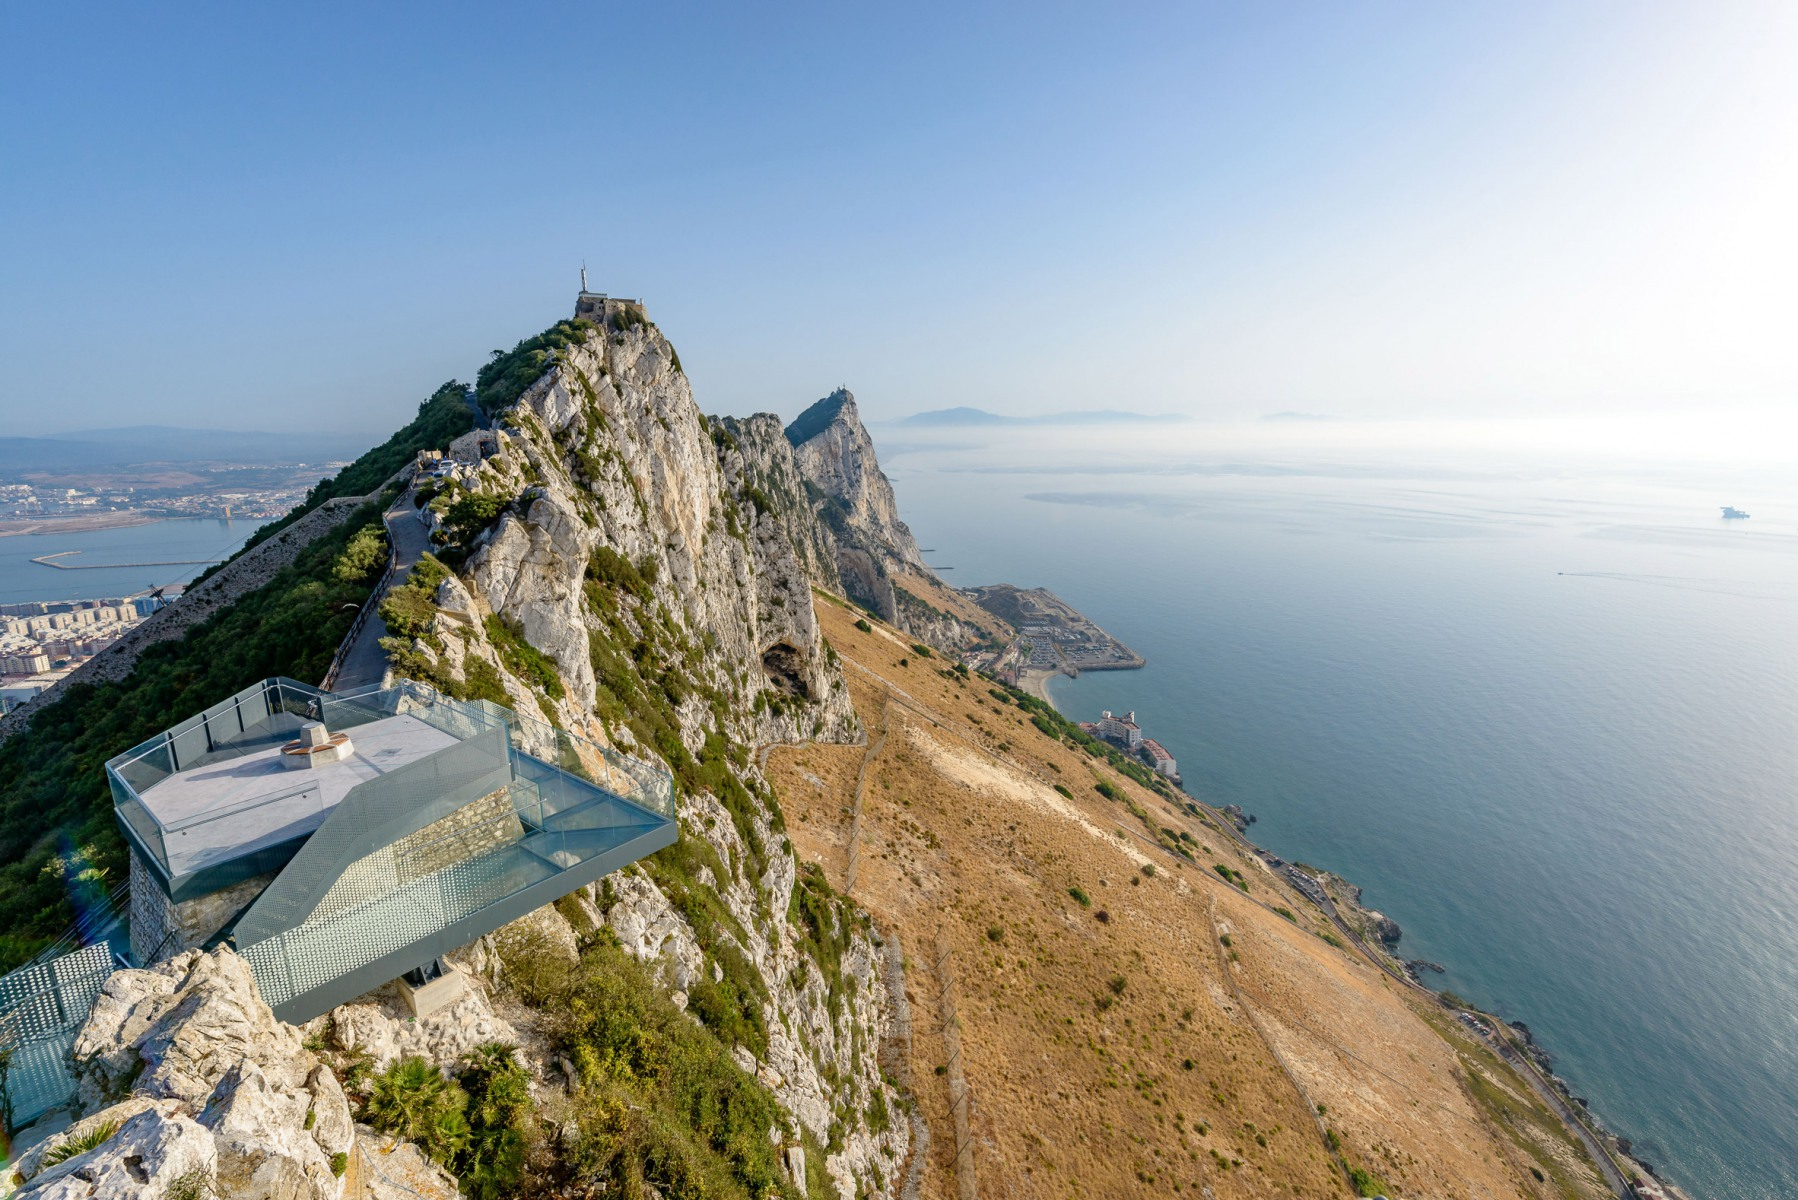 skywalk-gibraltar-8-photo-taken-for-bovis-koala-jv-by-meteogibs-photographer-stephen-ball_41367548130_o